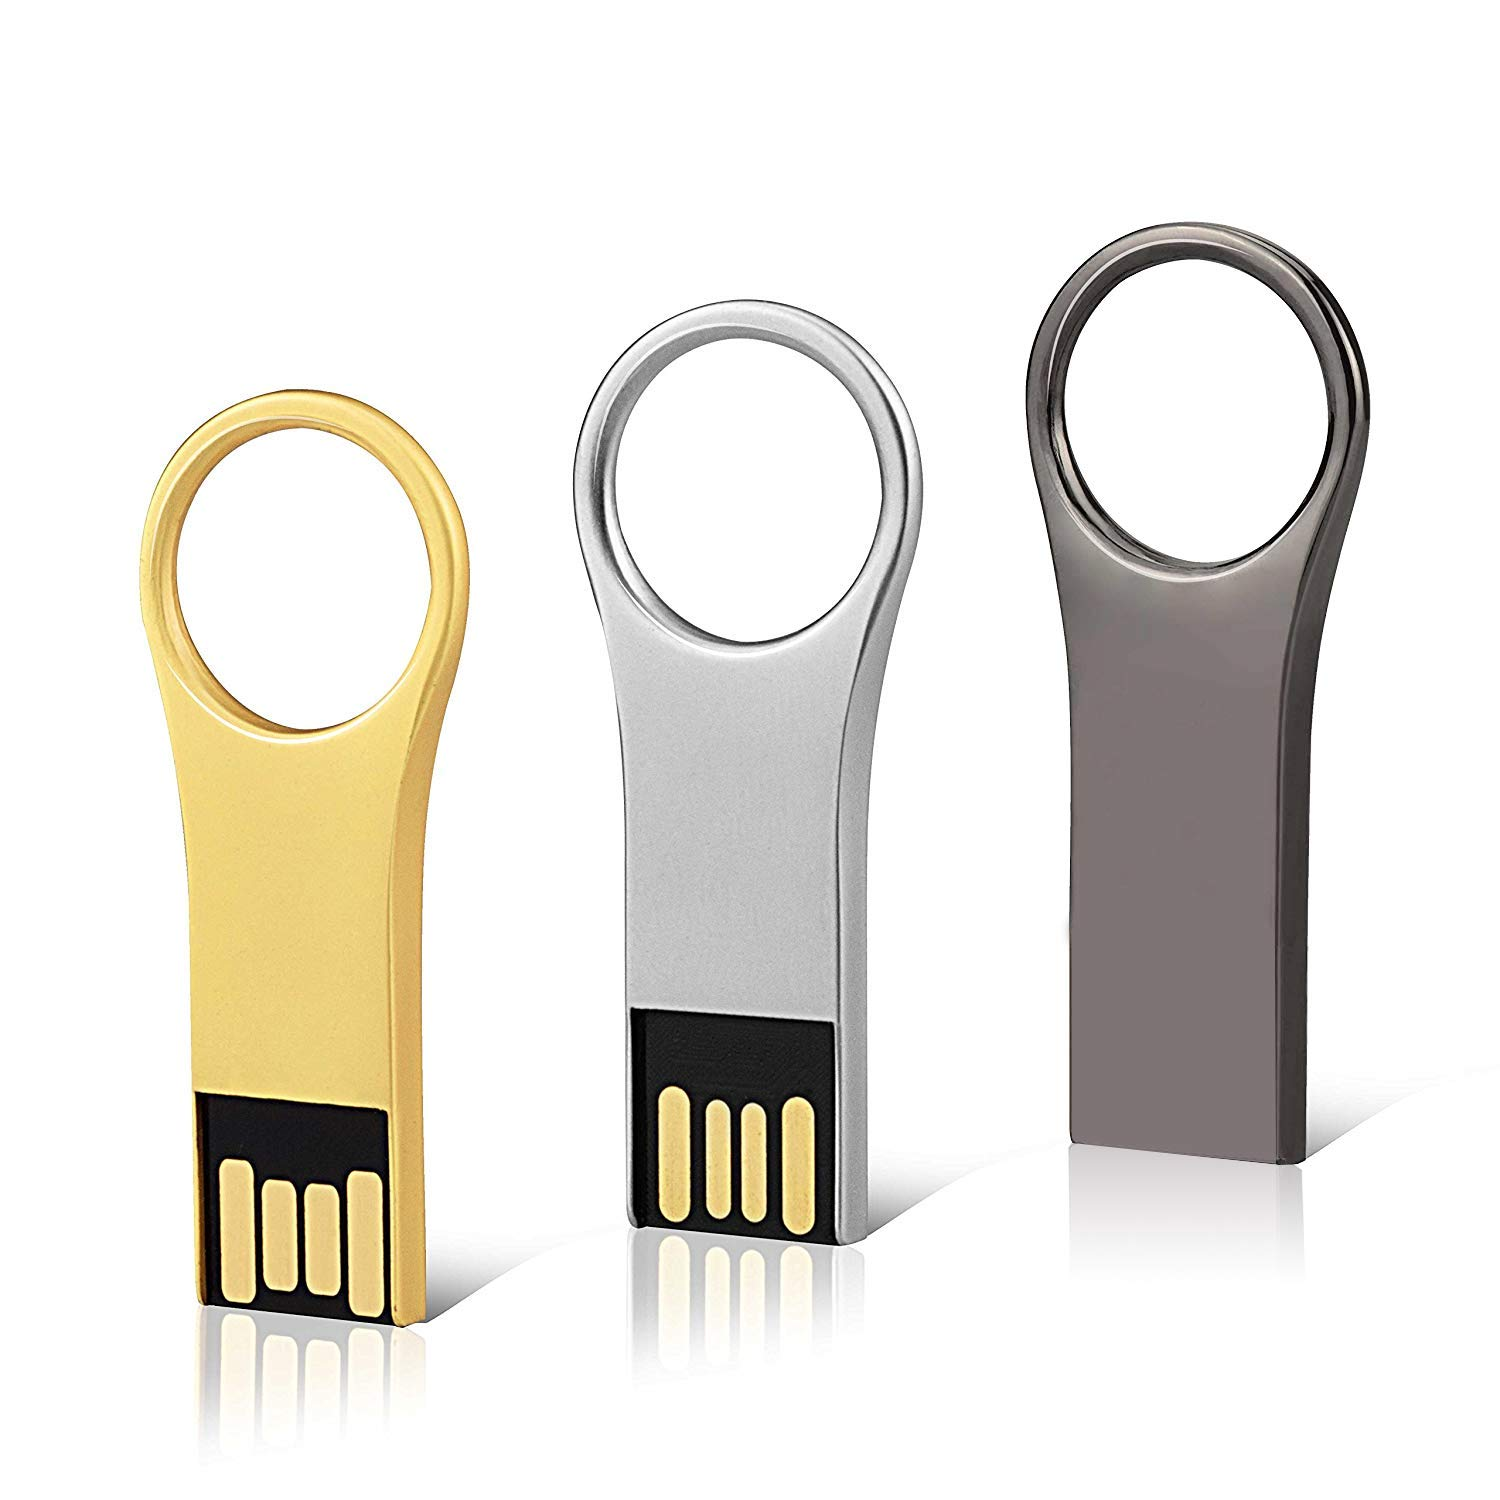 KEXIN 3 PCS 32GB Memoria Flash USB 2.0, Pendrive 32GB Metal USB Portátil Impermeable Flah Drive 2.0 (3 Colores Mixtos: Oro, Plata, Negro): Amazon.es: Informática